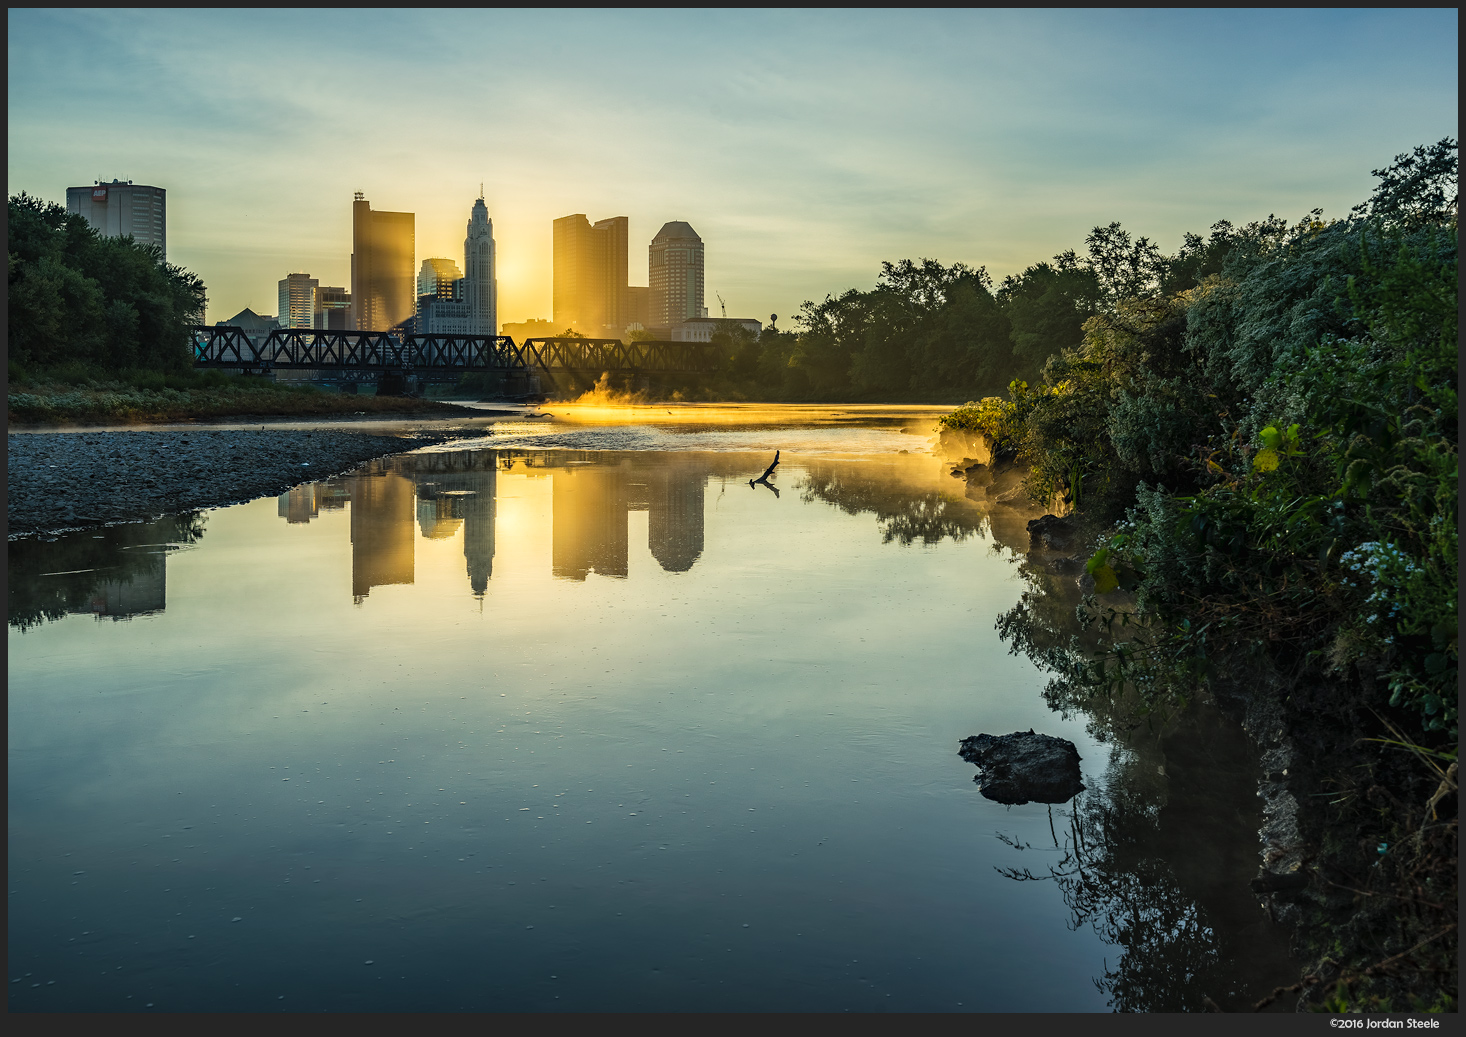 Columbus Sunrise - Sony A7 II with Zeiss FE 16-35mm f/4 ZA OSS @ 35mm,